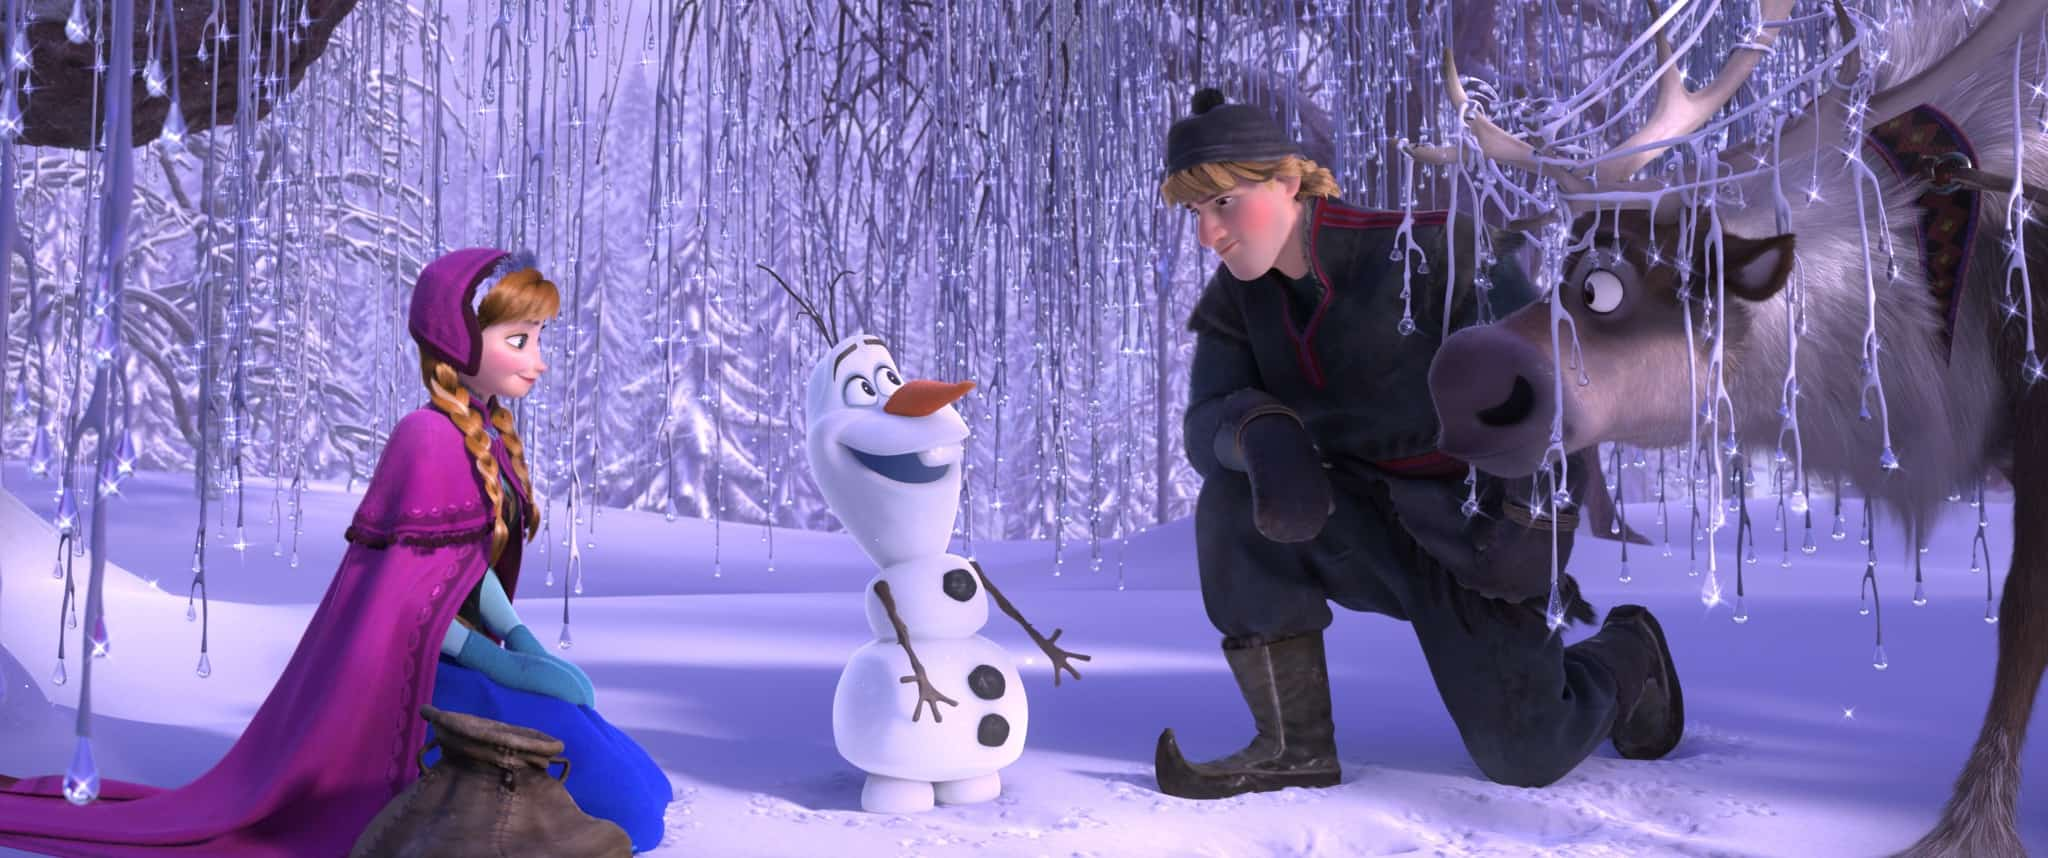 Disney 39 s frozen a must see disneyfrozen teachable mommy - Frozen anna and olaf ...